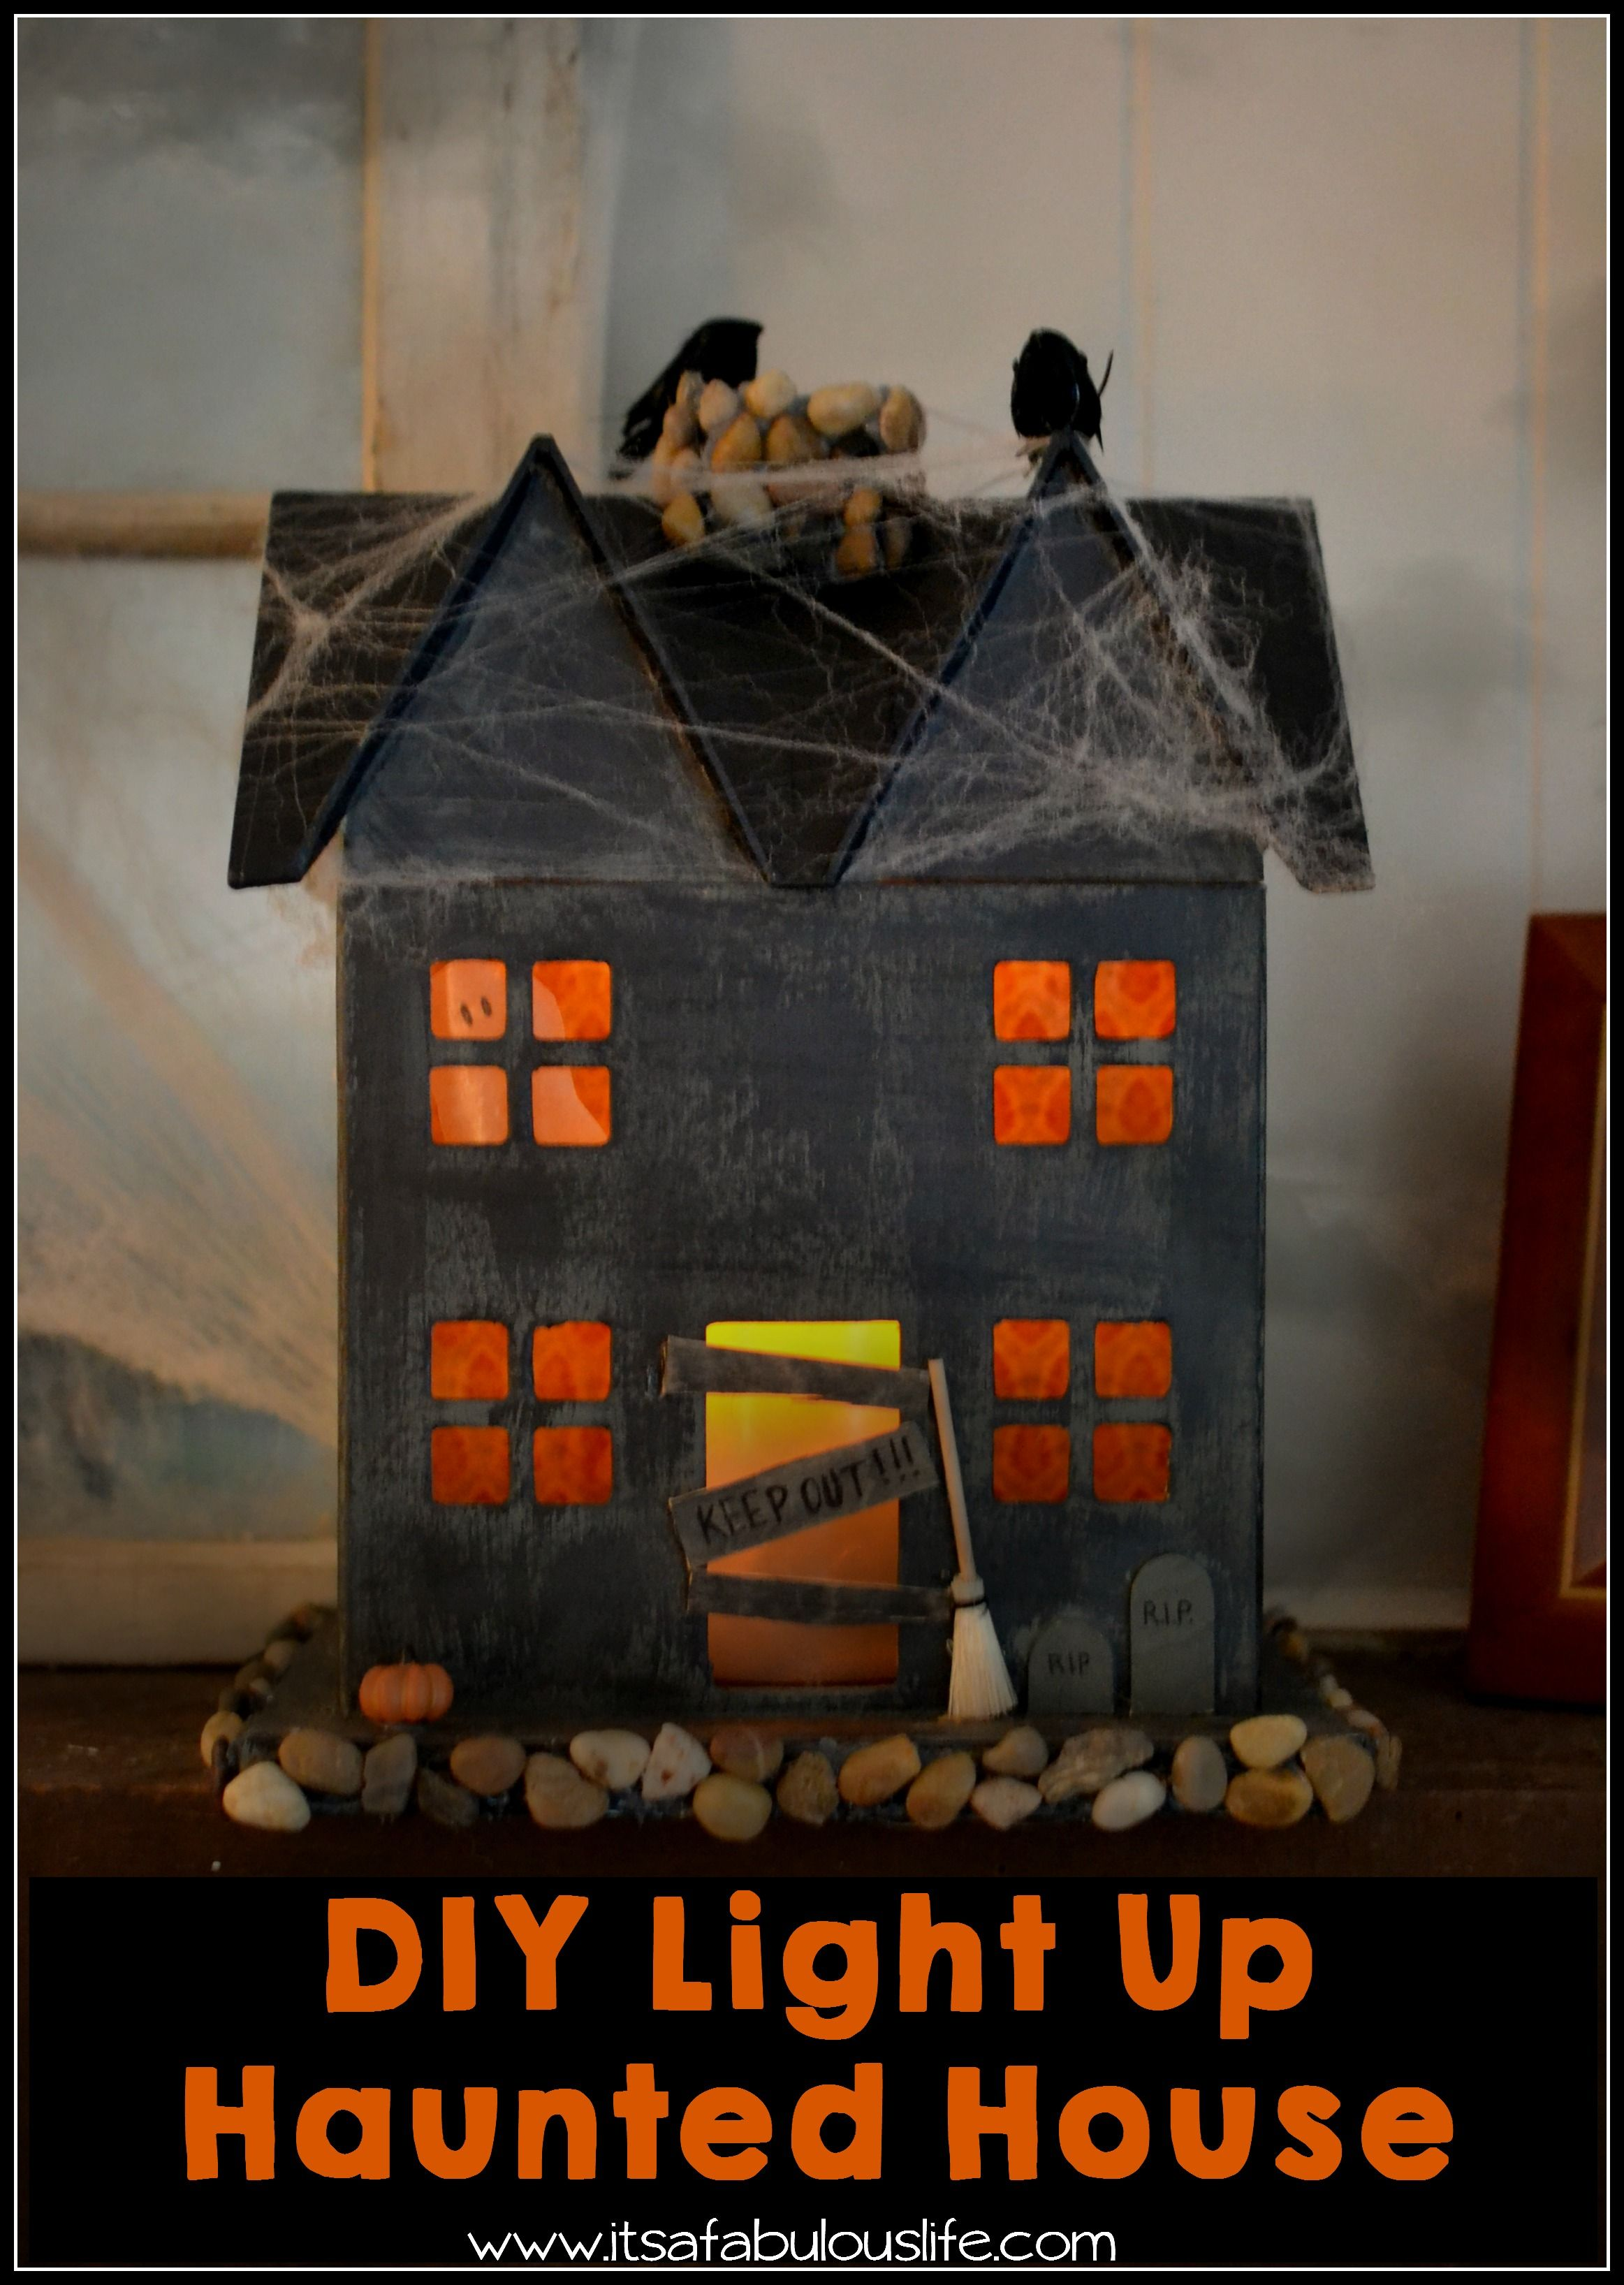 Diy haunted house 28 images diy haunted house lit up for Pinterest haunted house